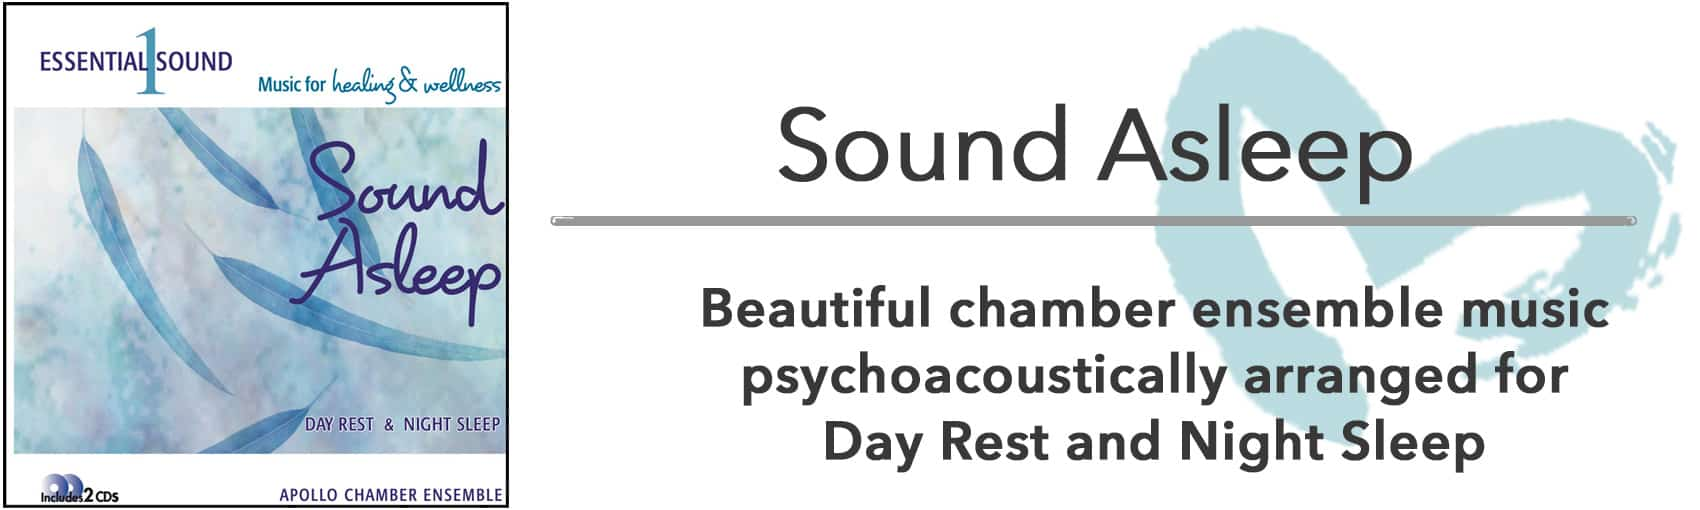 Chamber music to help withe day rest and night sleep